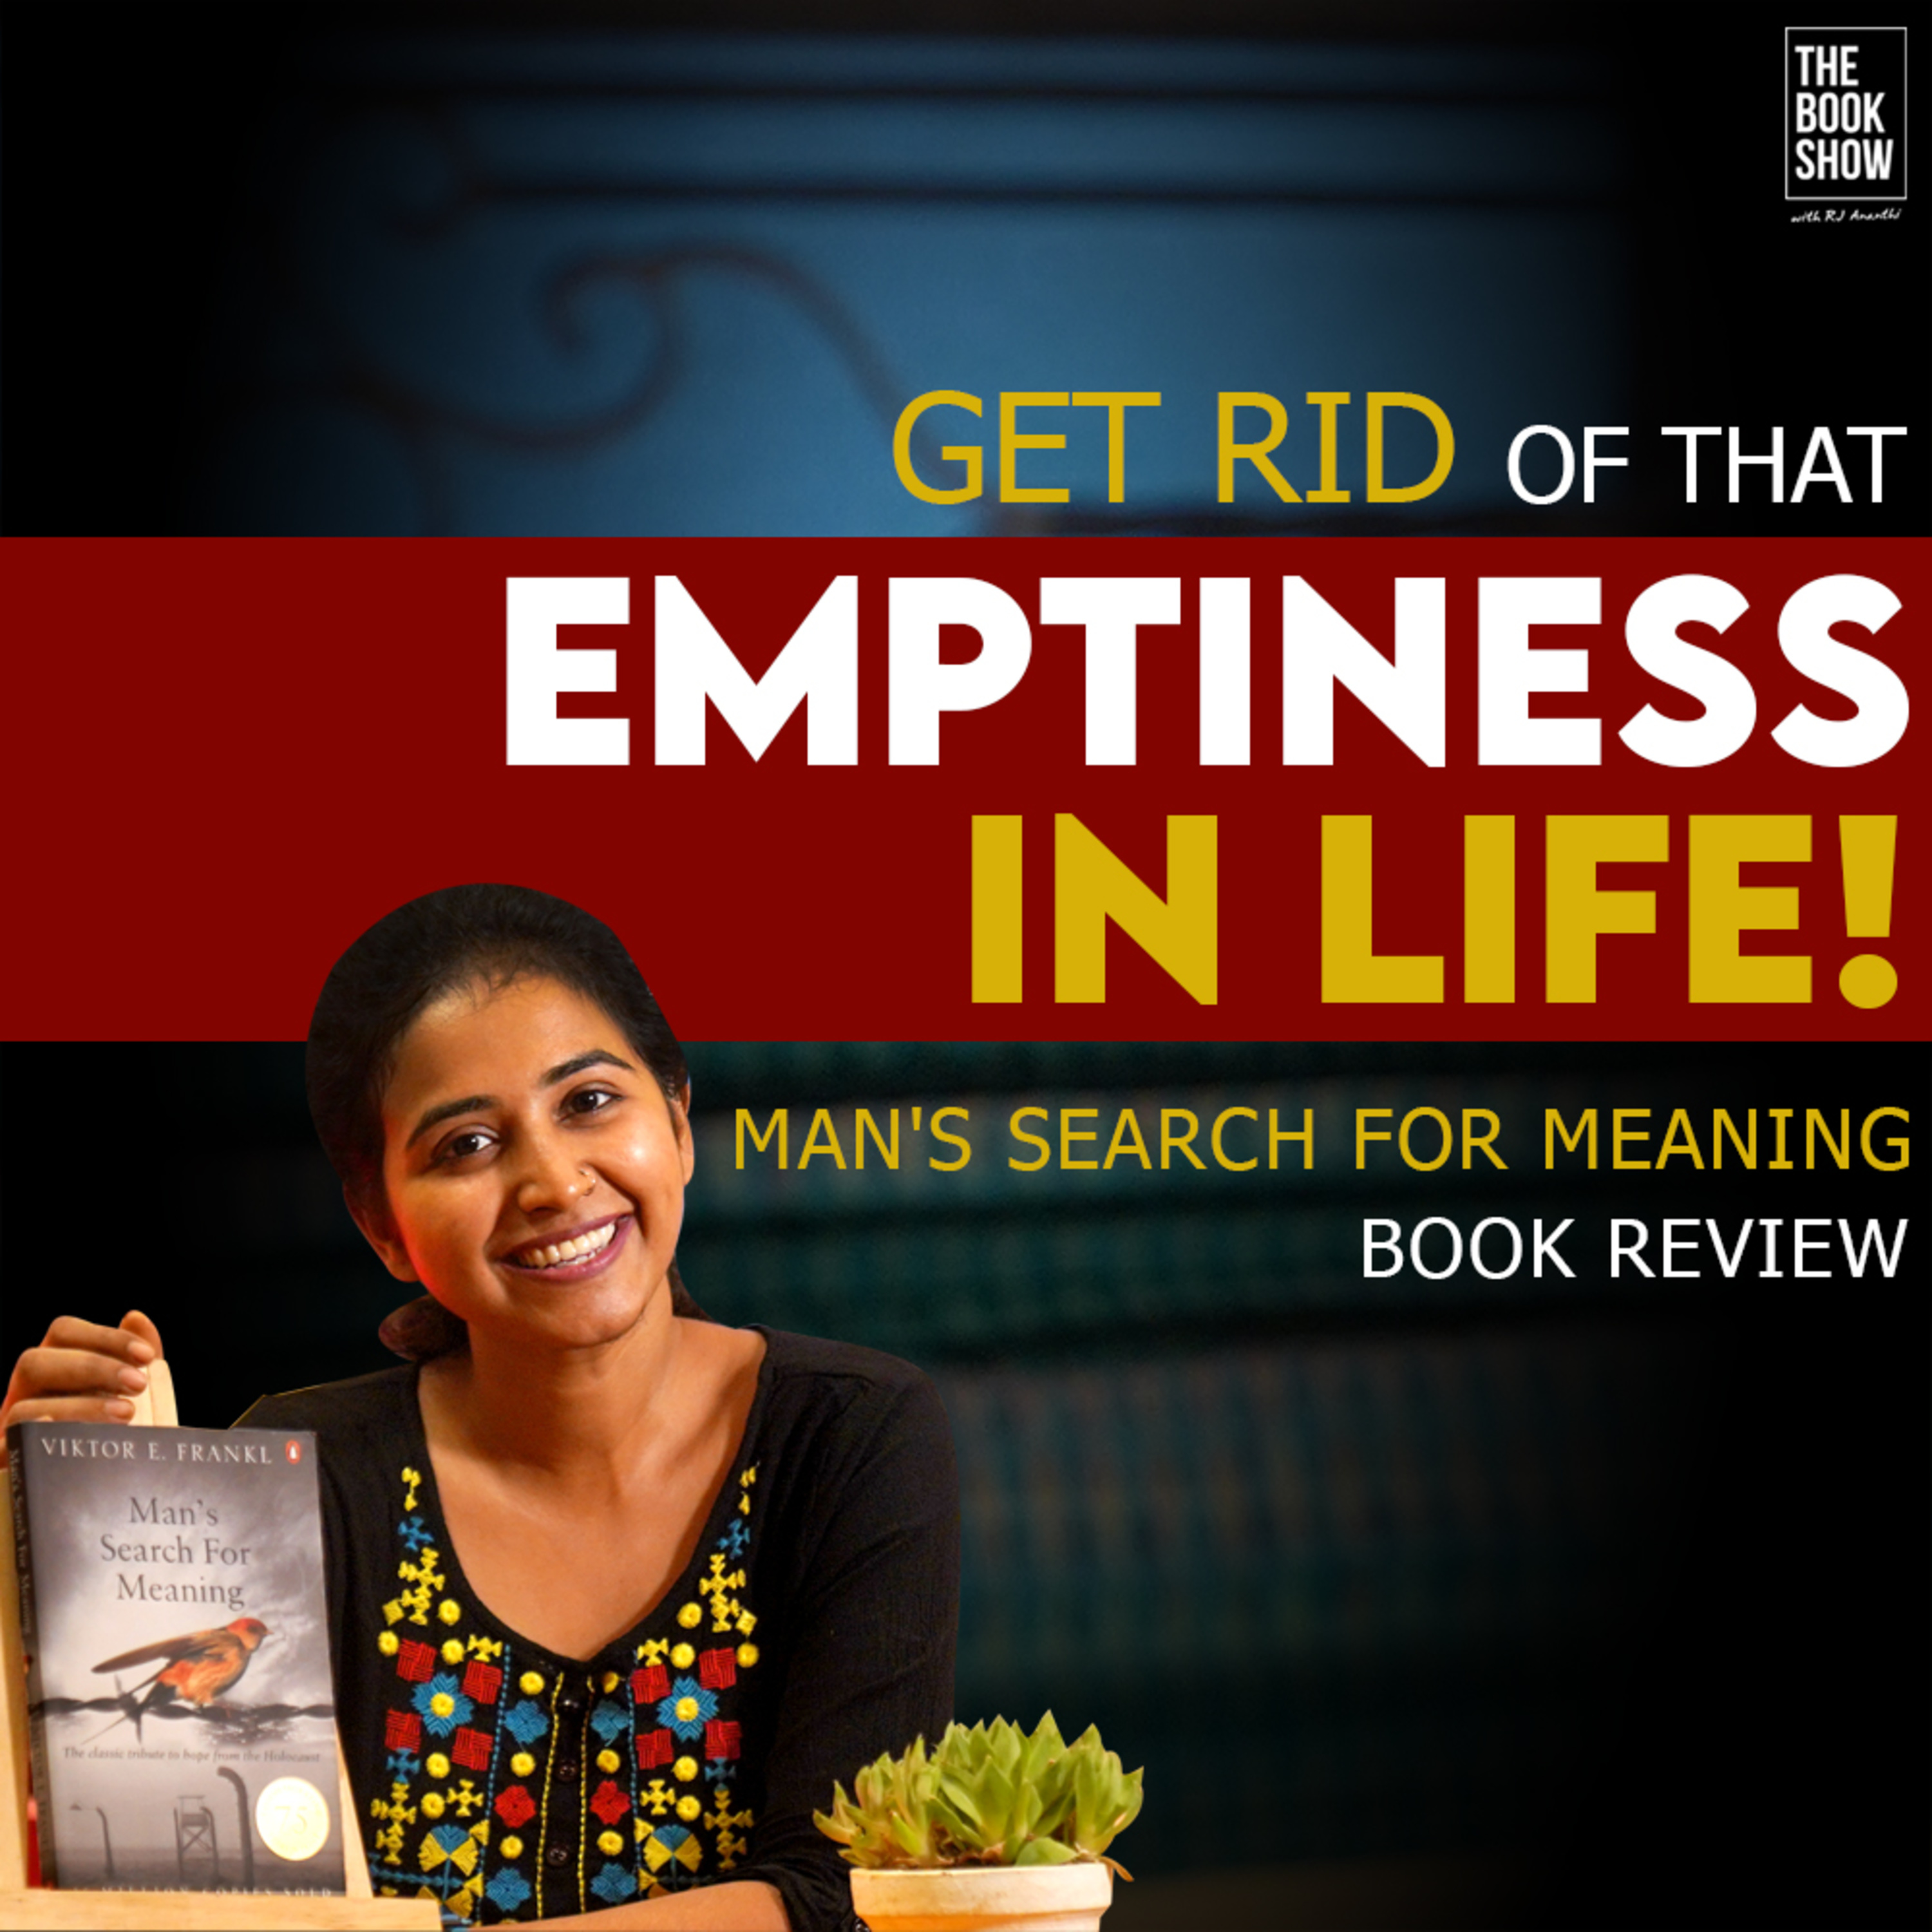 Man's Search For Meaning Book Review   The Book Show ft. RJ Ananthi